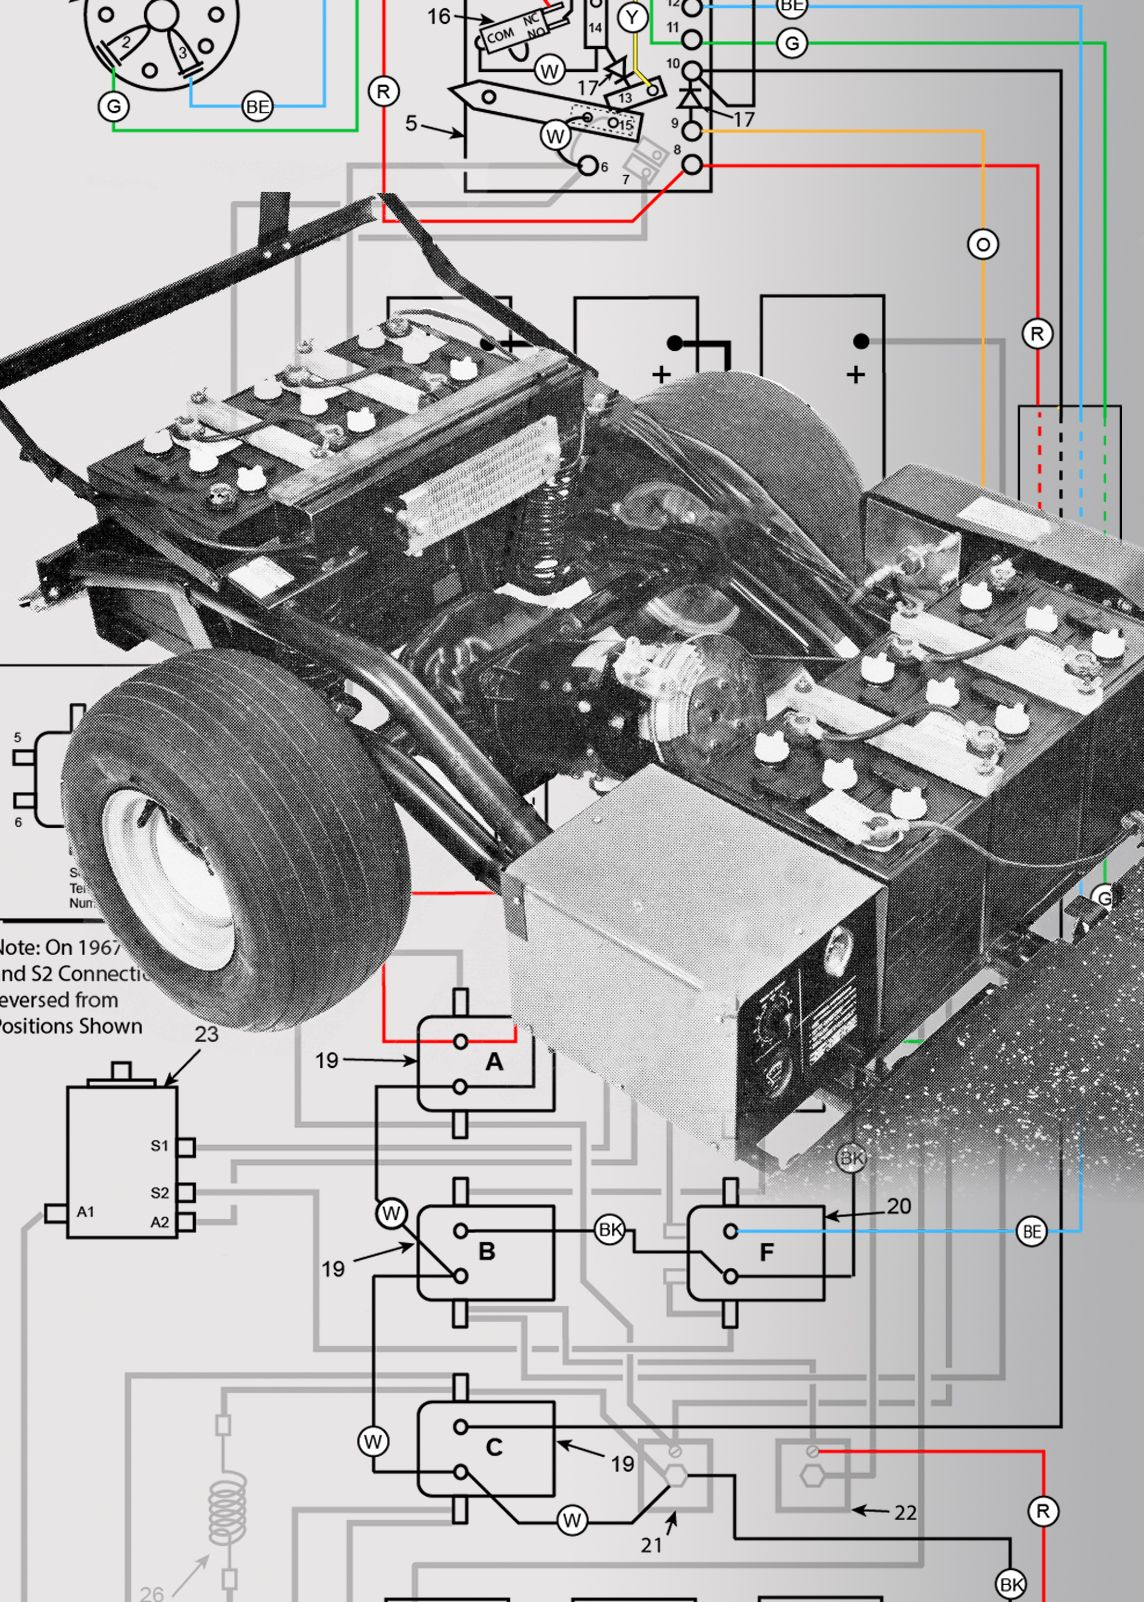 small resolution of colora coded wiring diagram for 1967 through 1970 harley davidson de model golf carts